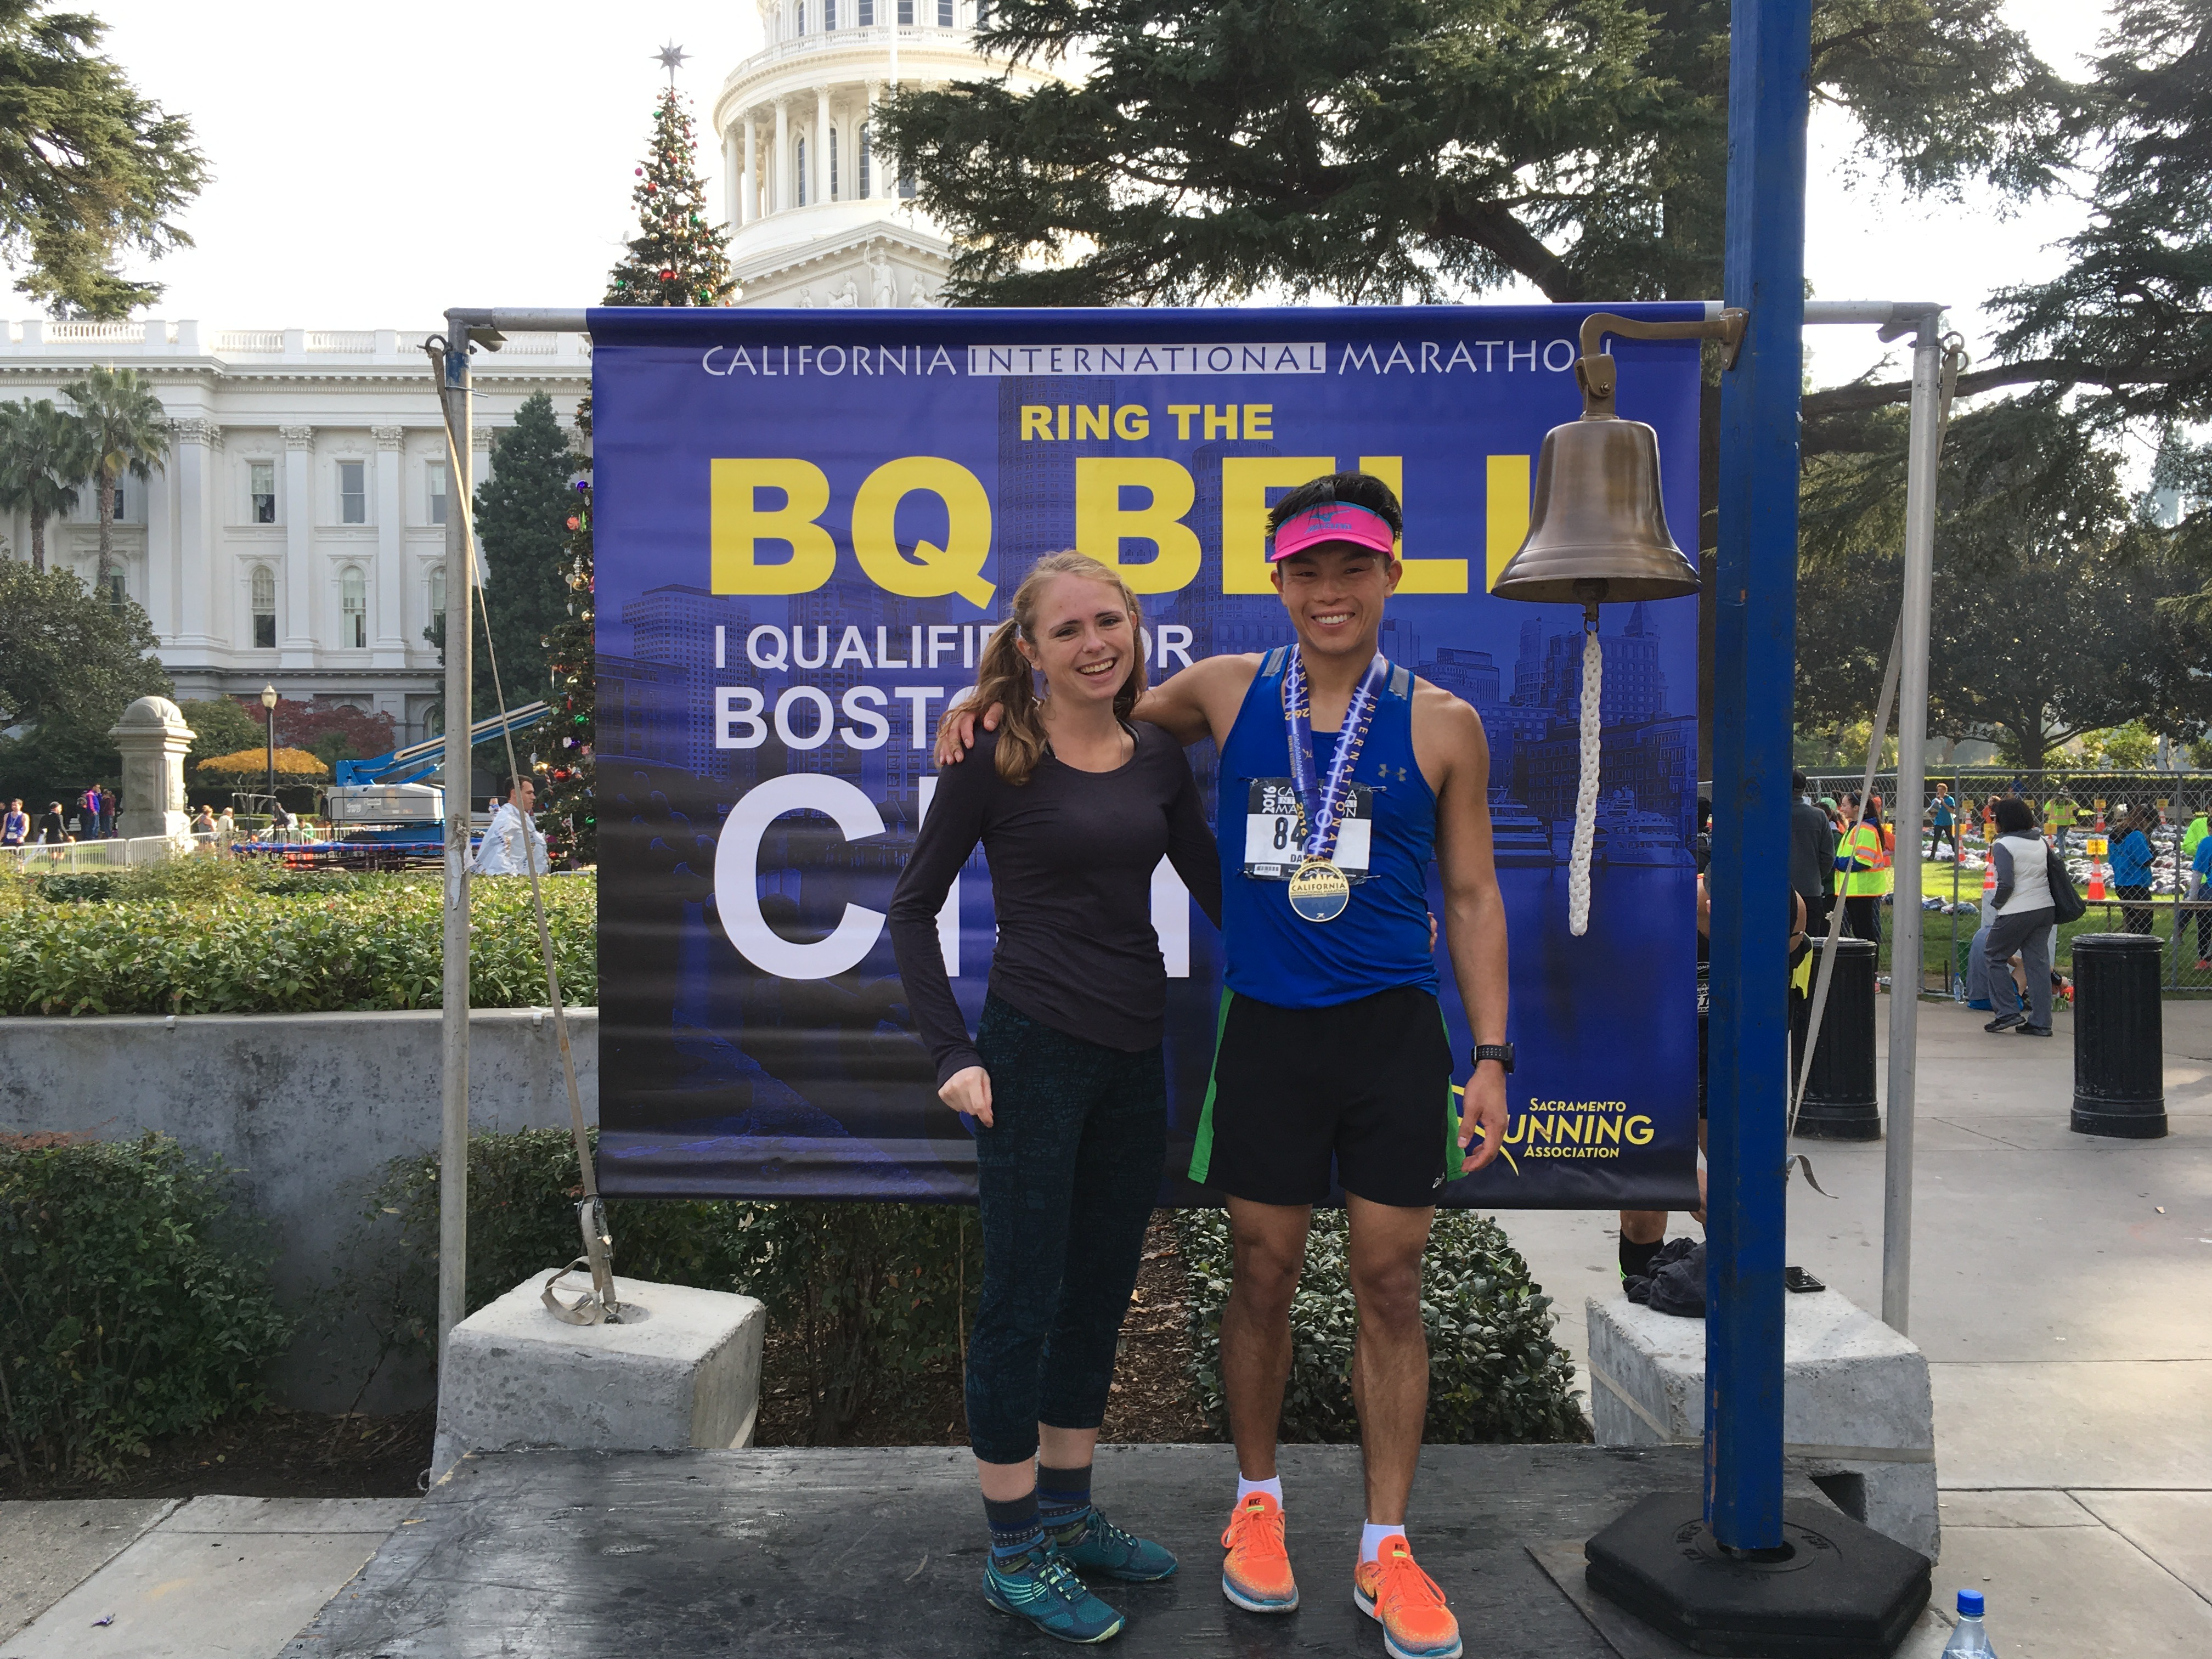 Ringing the Boston bell at the California International Marathon 2016